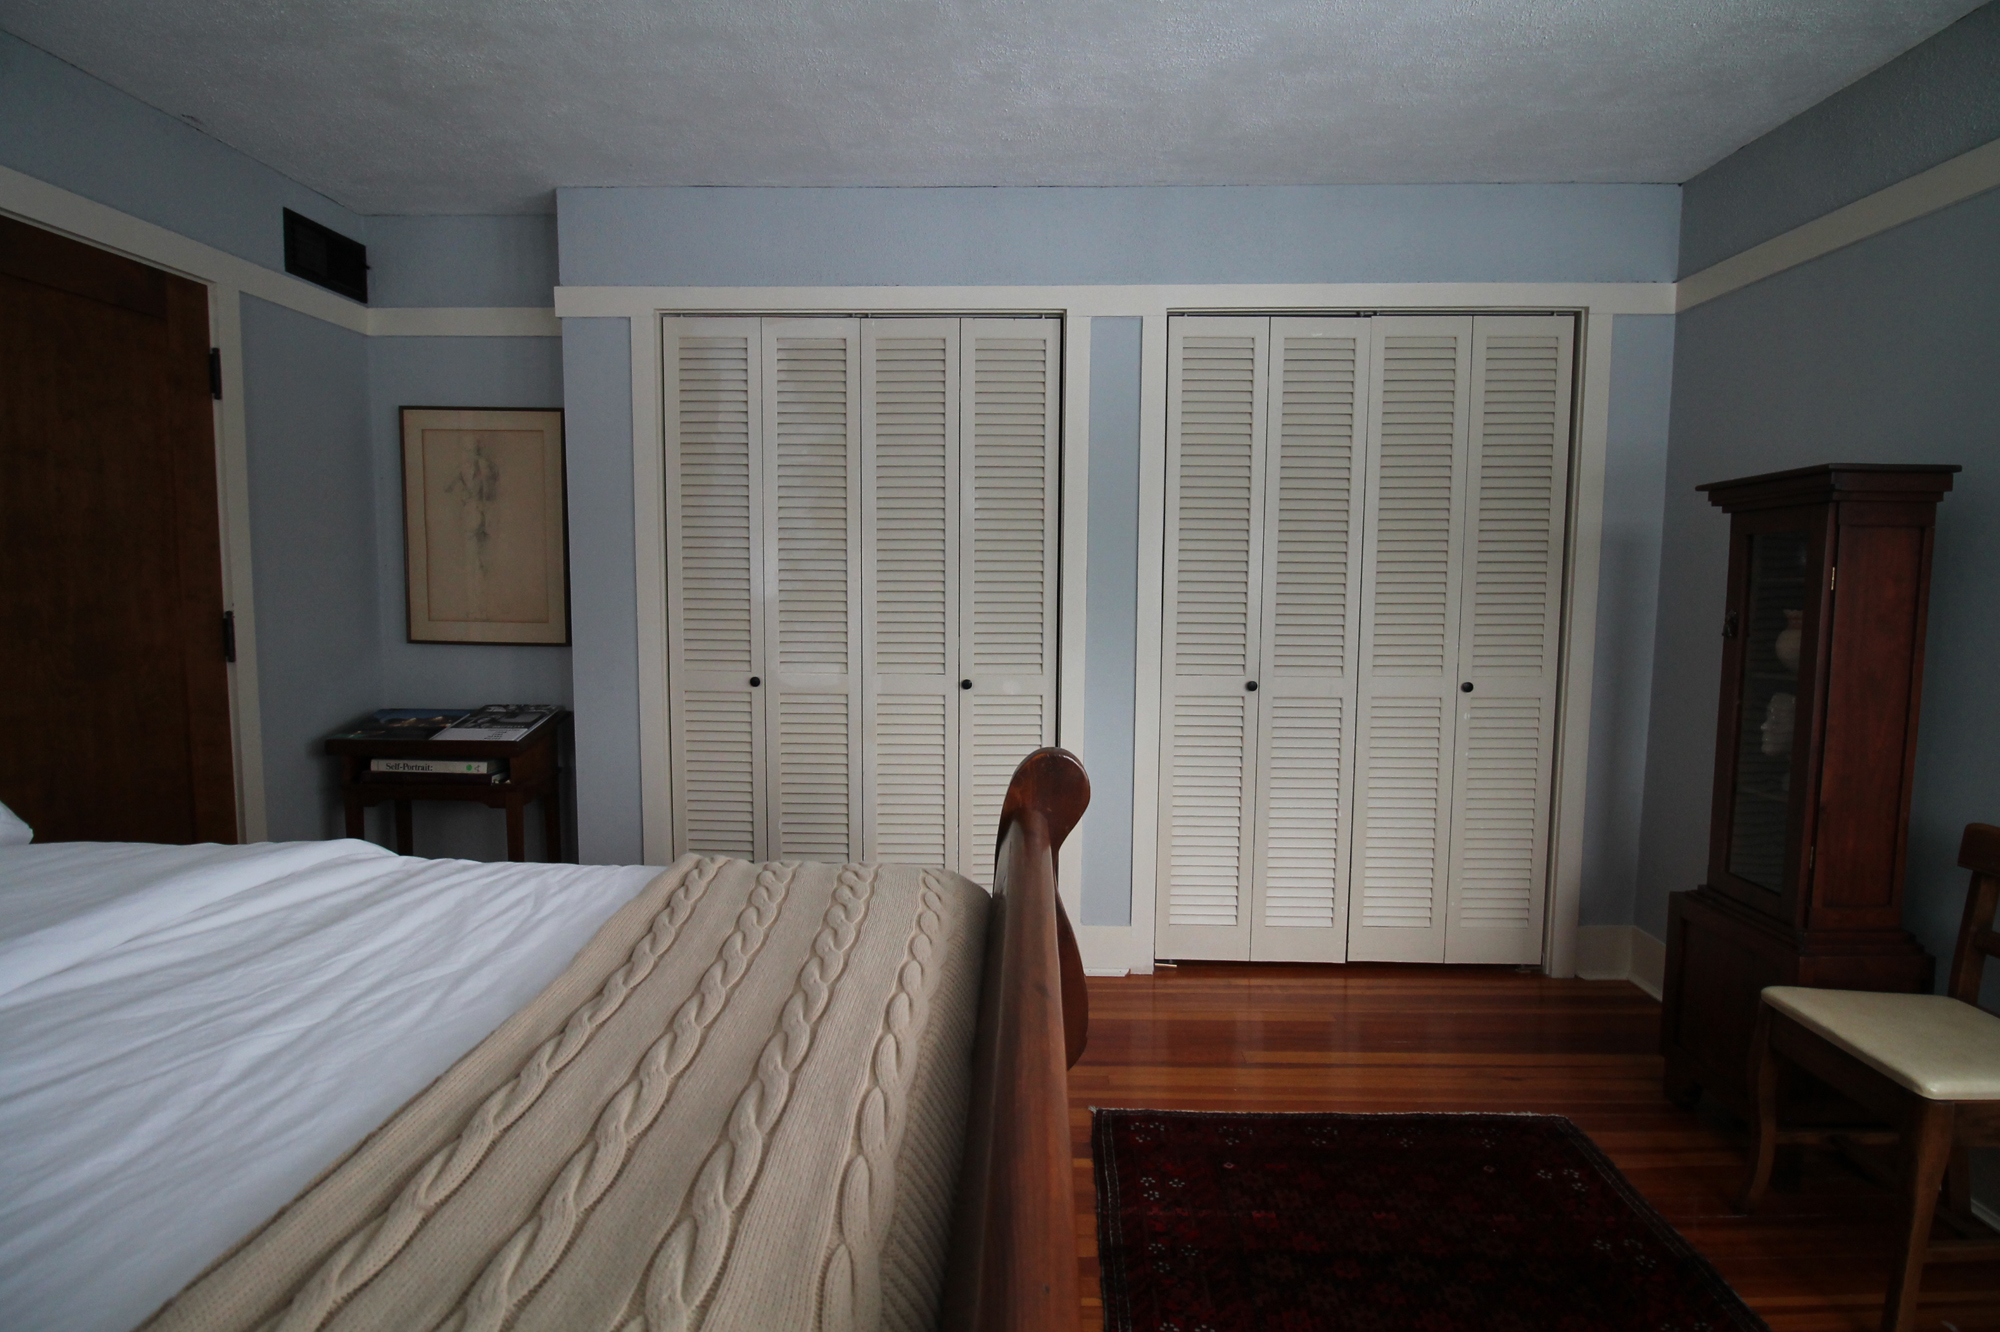 American System-Built Home - Bedroom